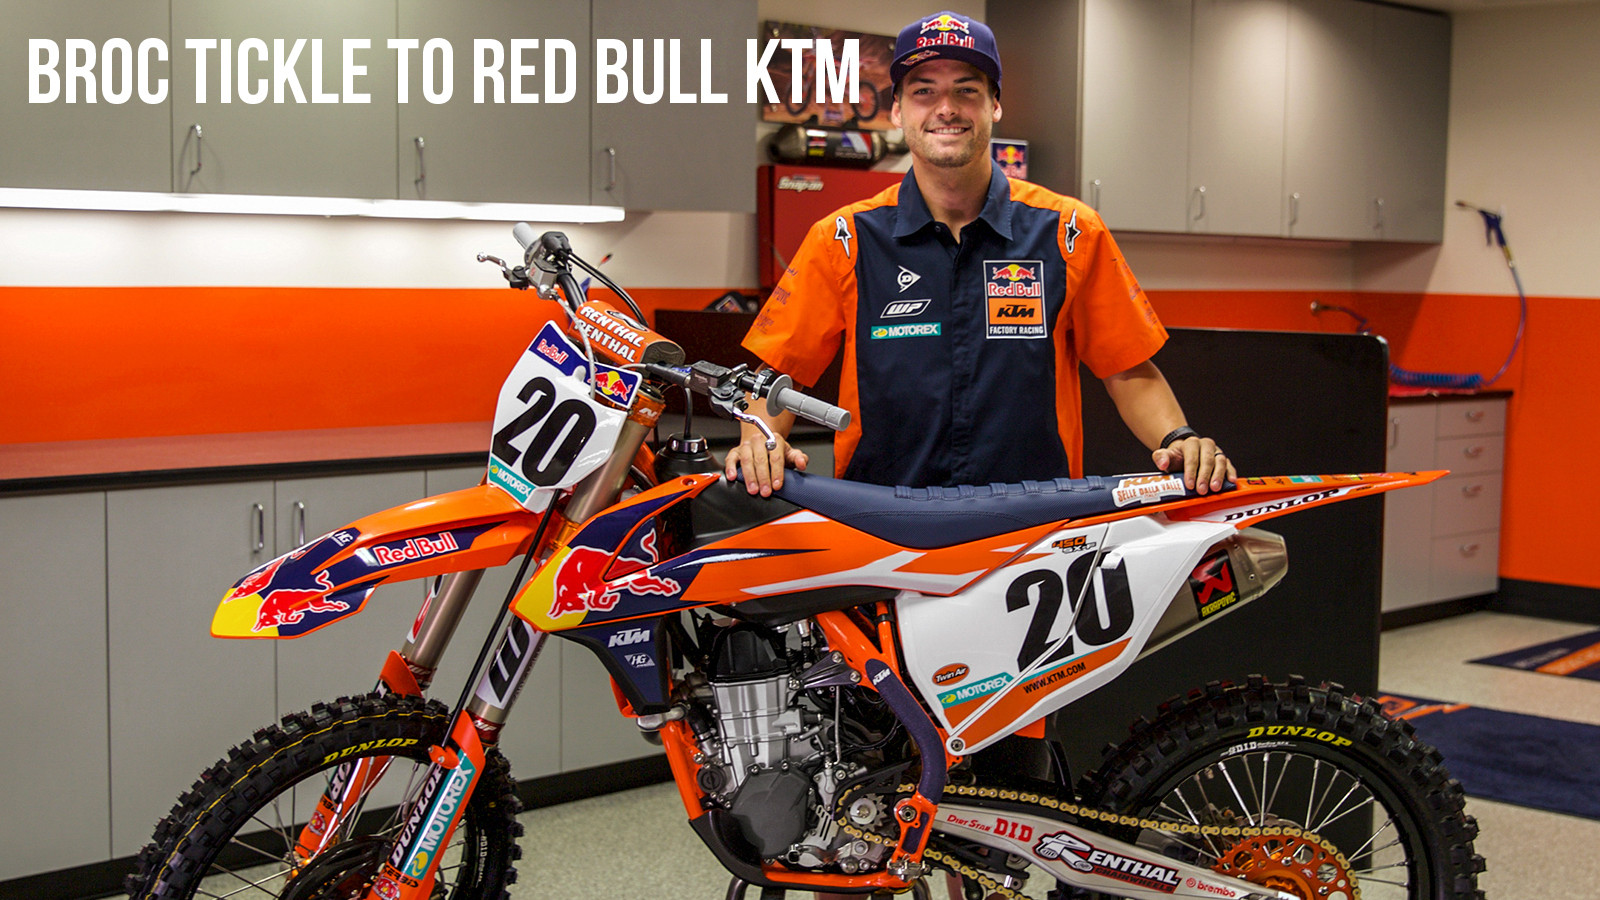 Official: Broc Tickle to Red Bull KTM for 2018